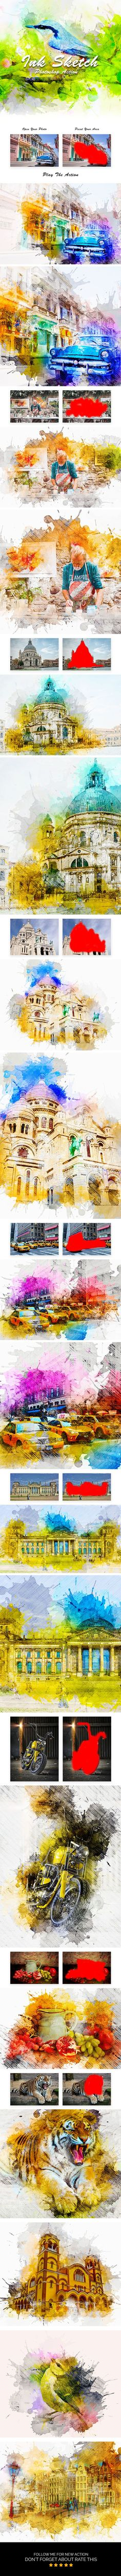 Top Bhopal Photographer - Amit Nimade - an International award winning photographer recommanded to check it Ink Sketch #Photoshop #Action - Photo Effects Acti…